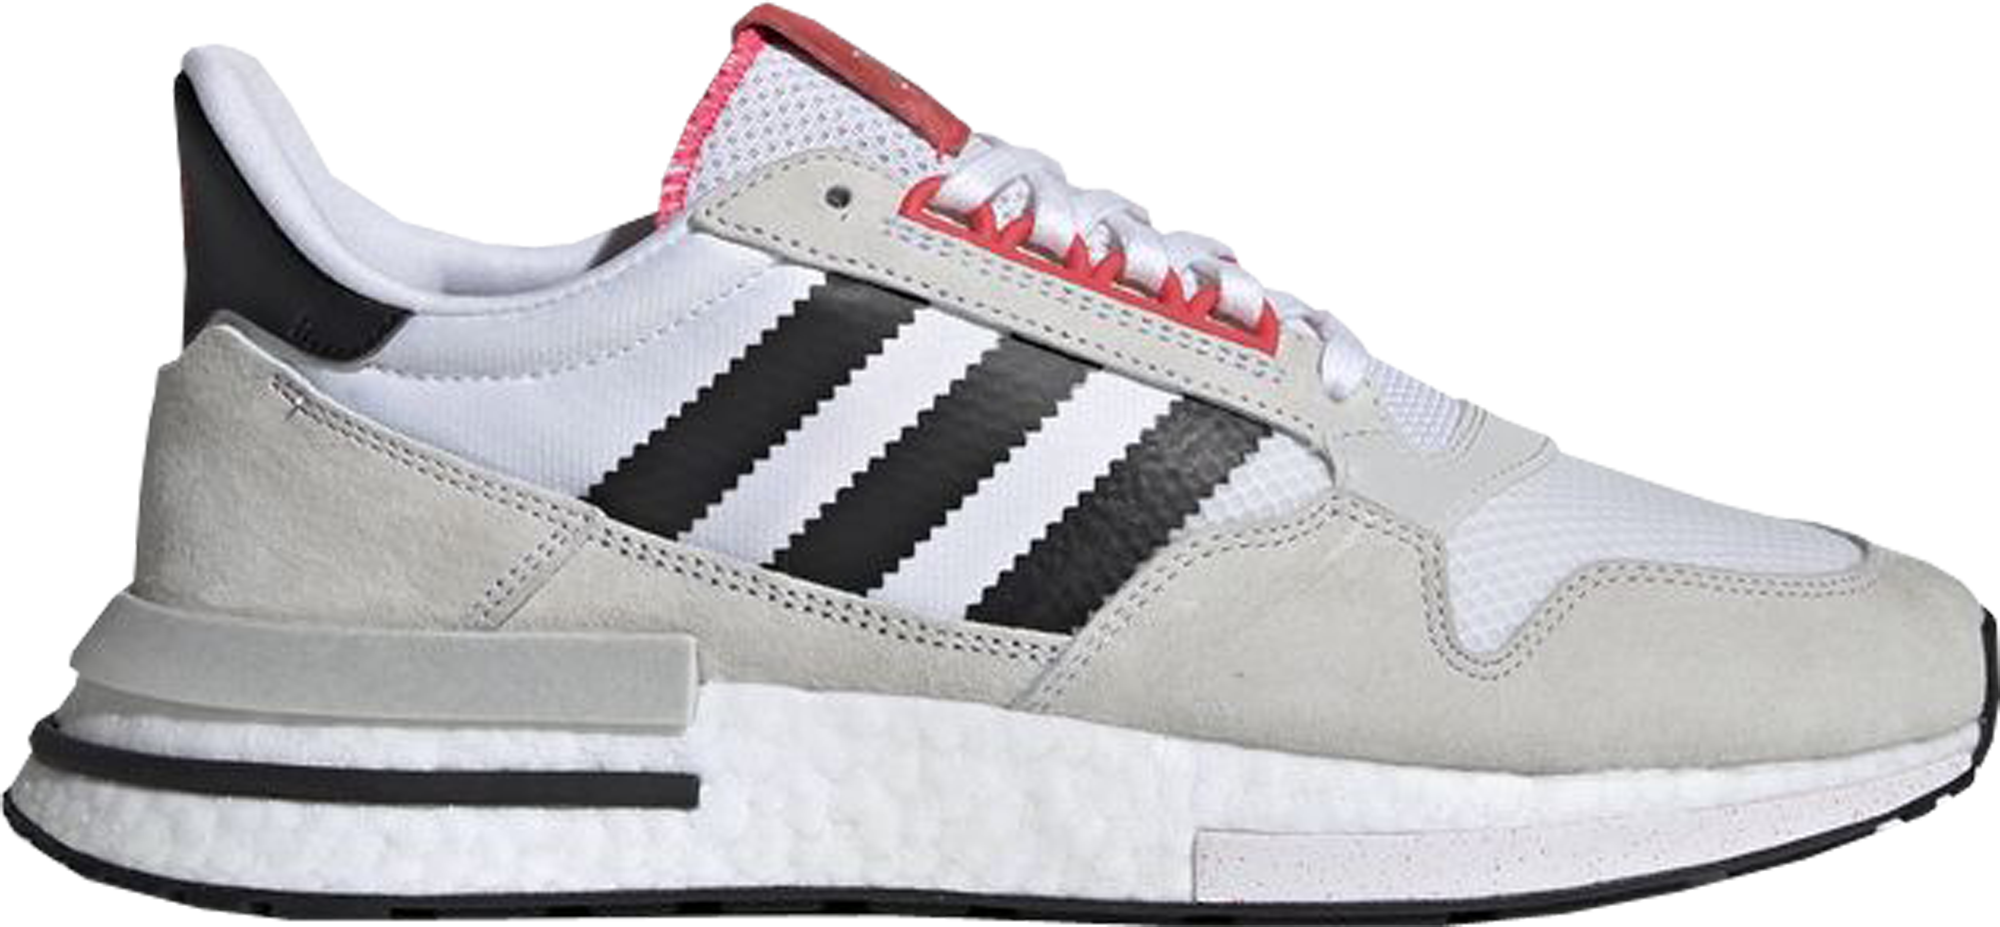 adidas ZX500 RM Forever